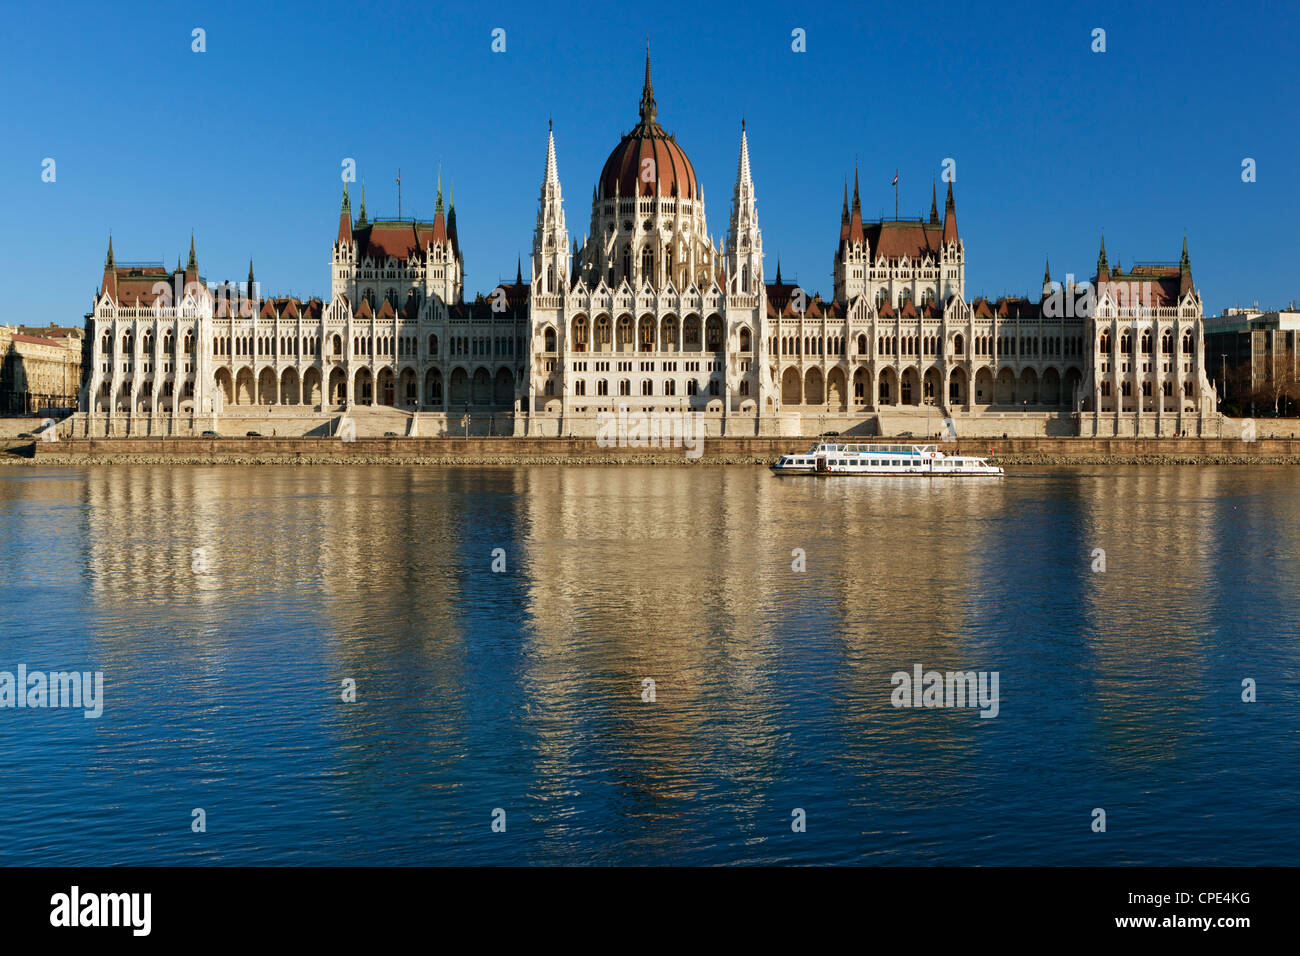 The Parliament (Orszaghaz) across River Danube at sunset, UNESCO World Heritage Site, Budapest, Hungary, Europe - Stock Image